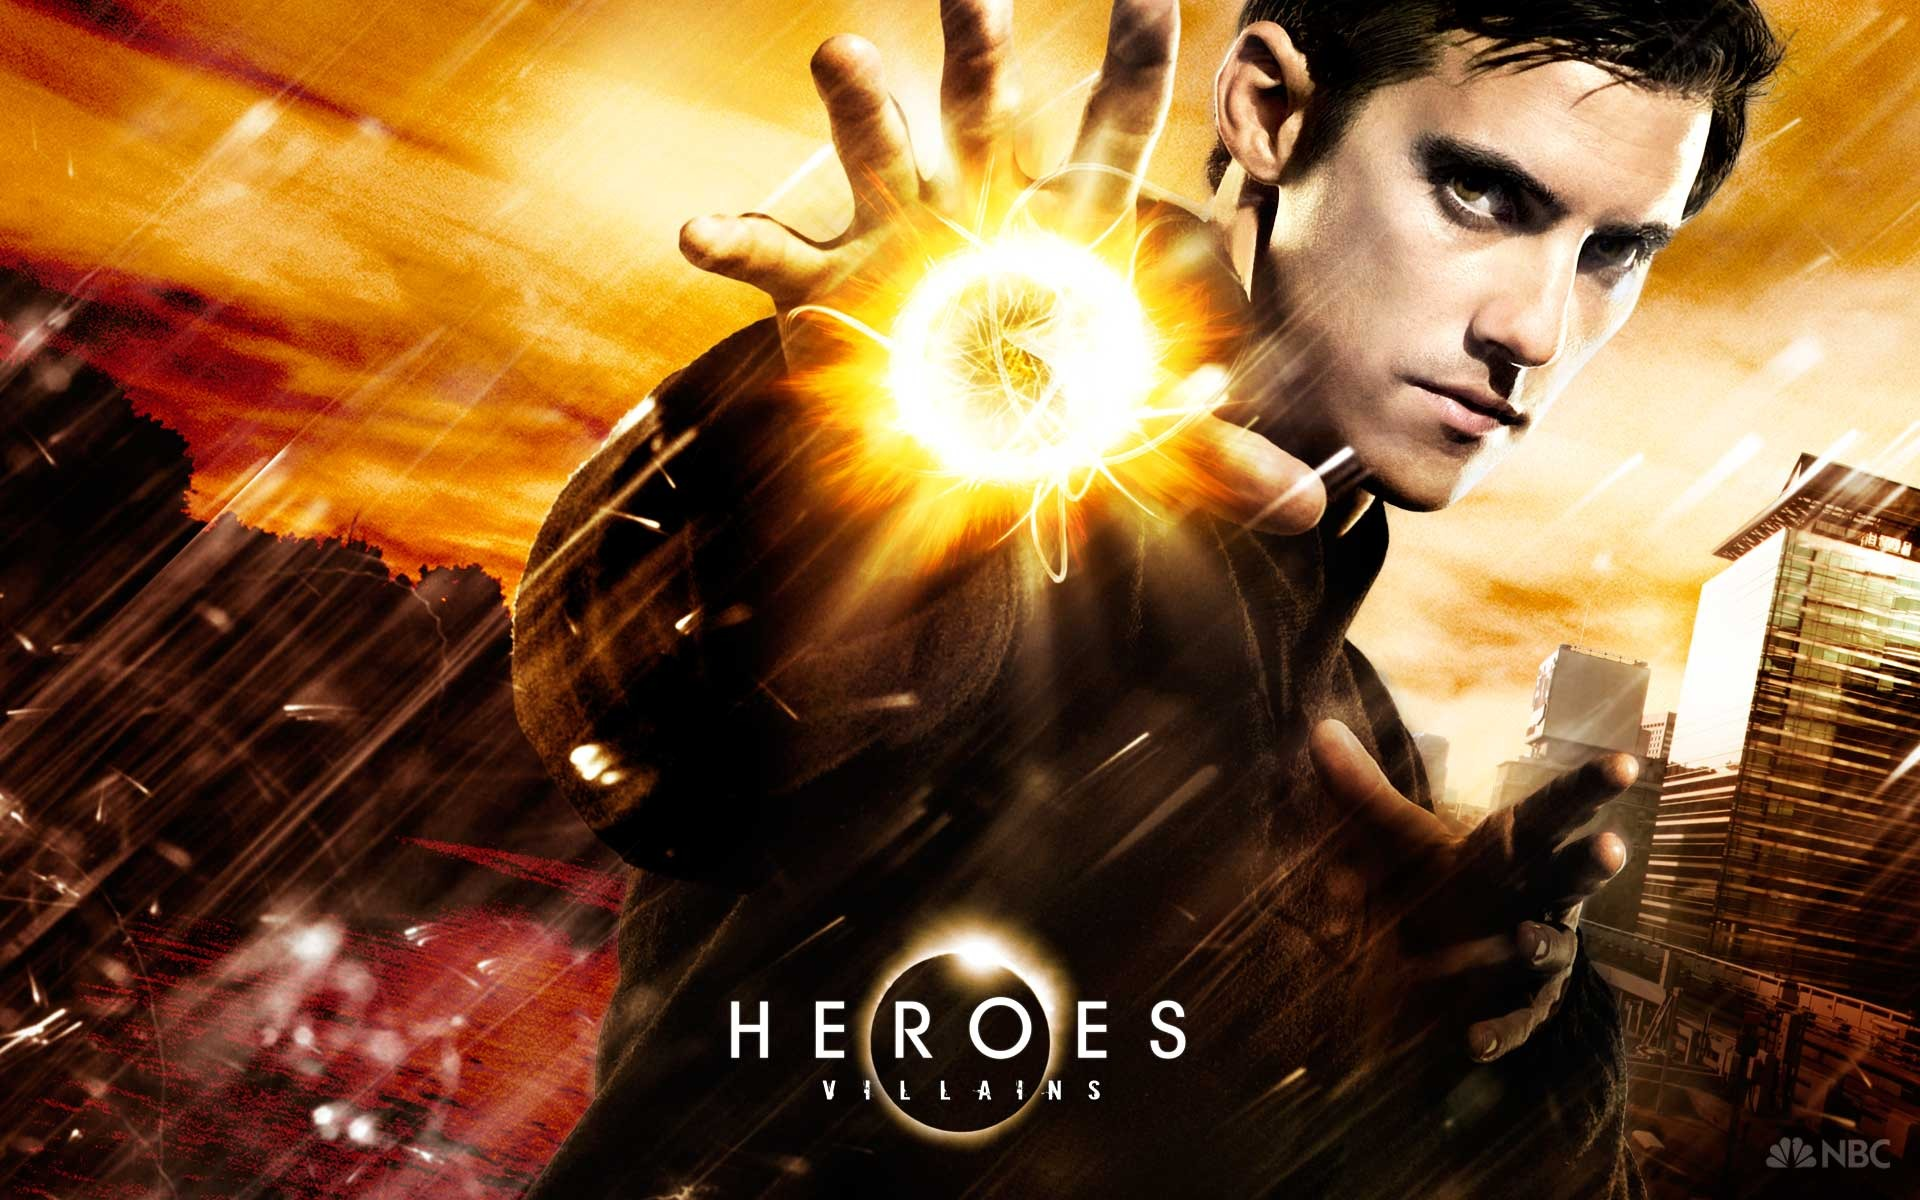 Heroes Wallpapers Download BJ6C8DH   4USkY 1920x1200